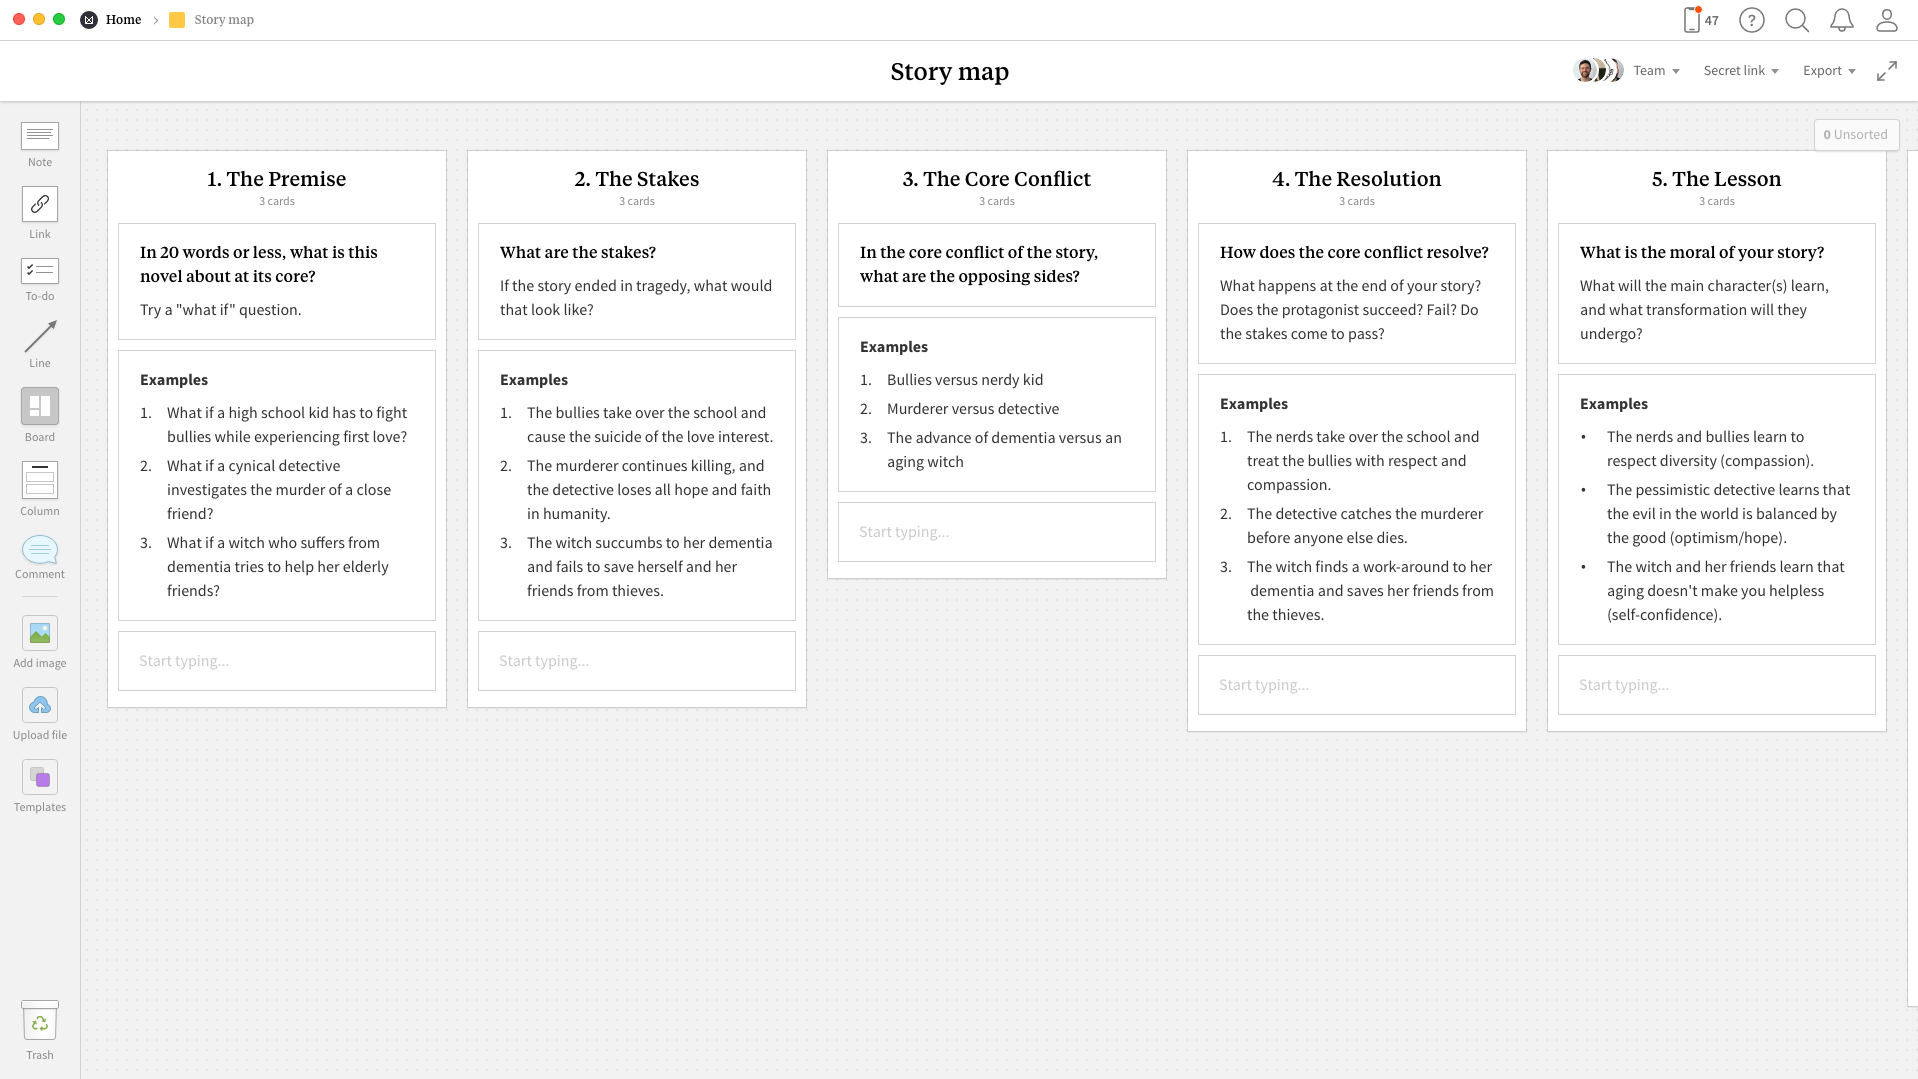 Completed Story Map template in Milanote app